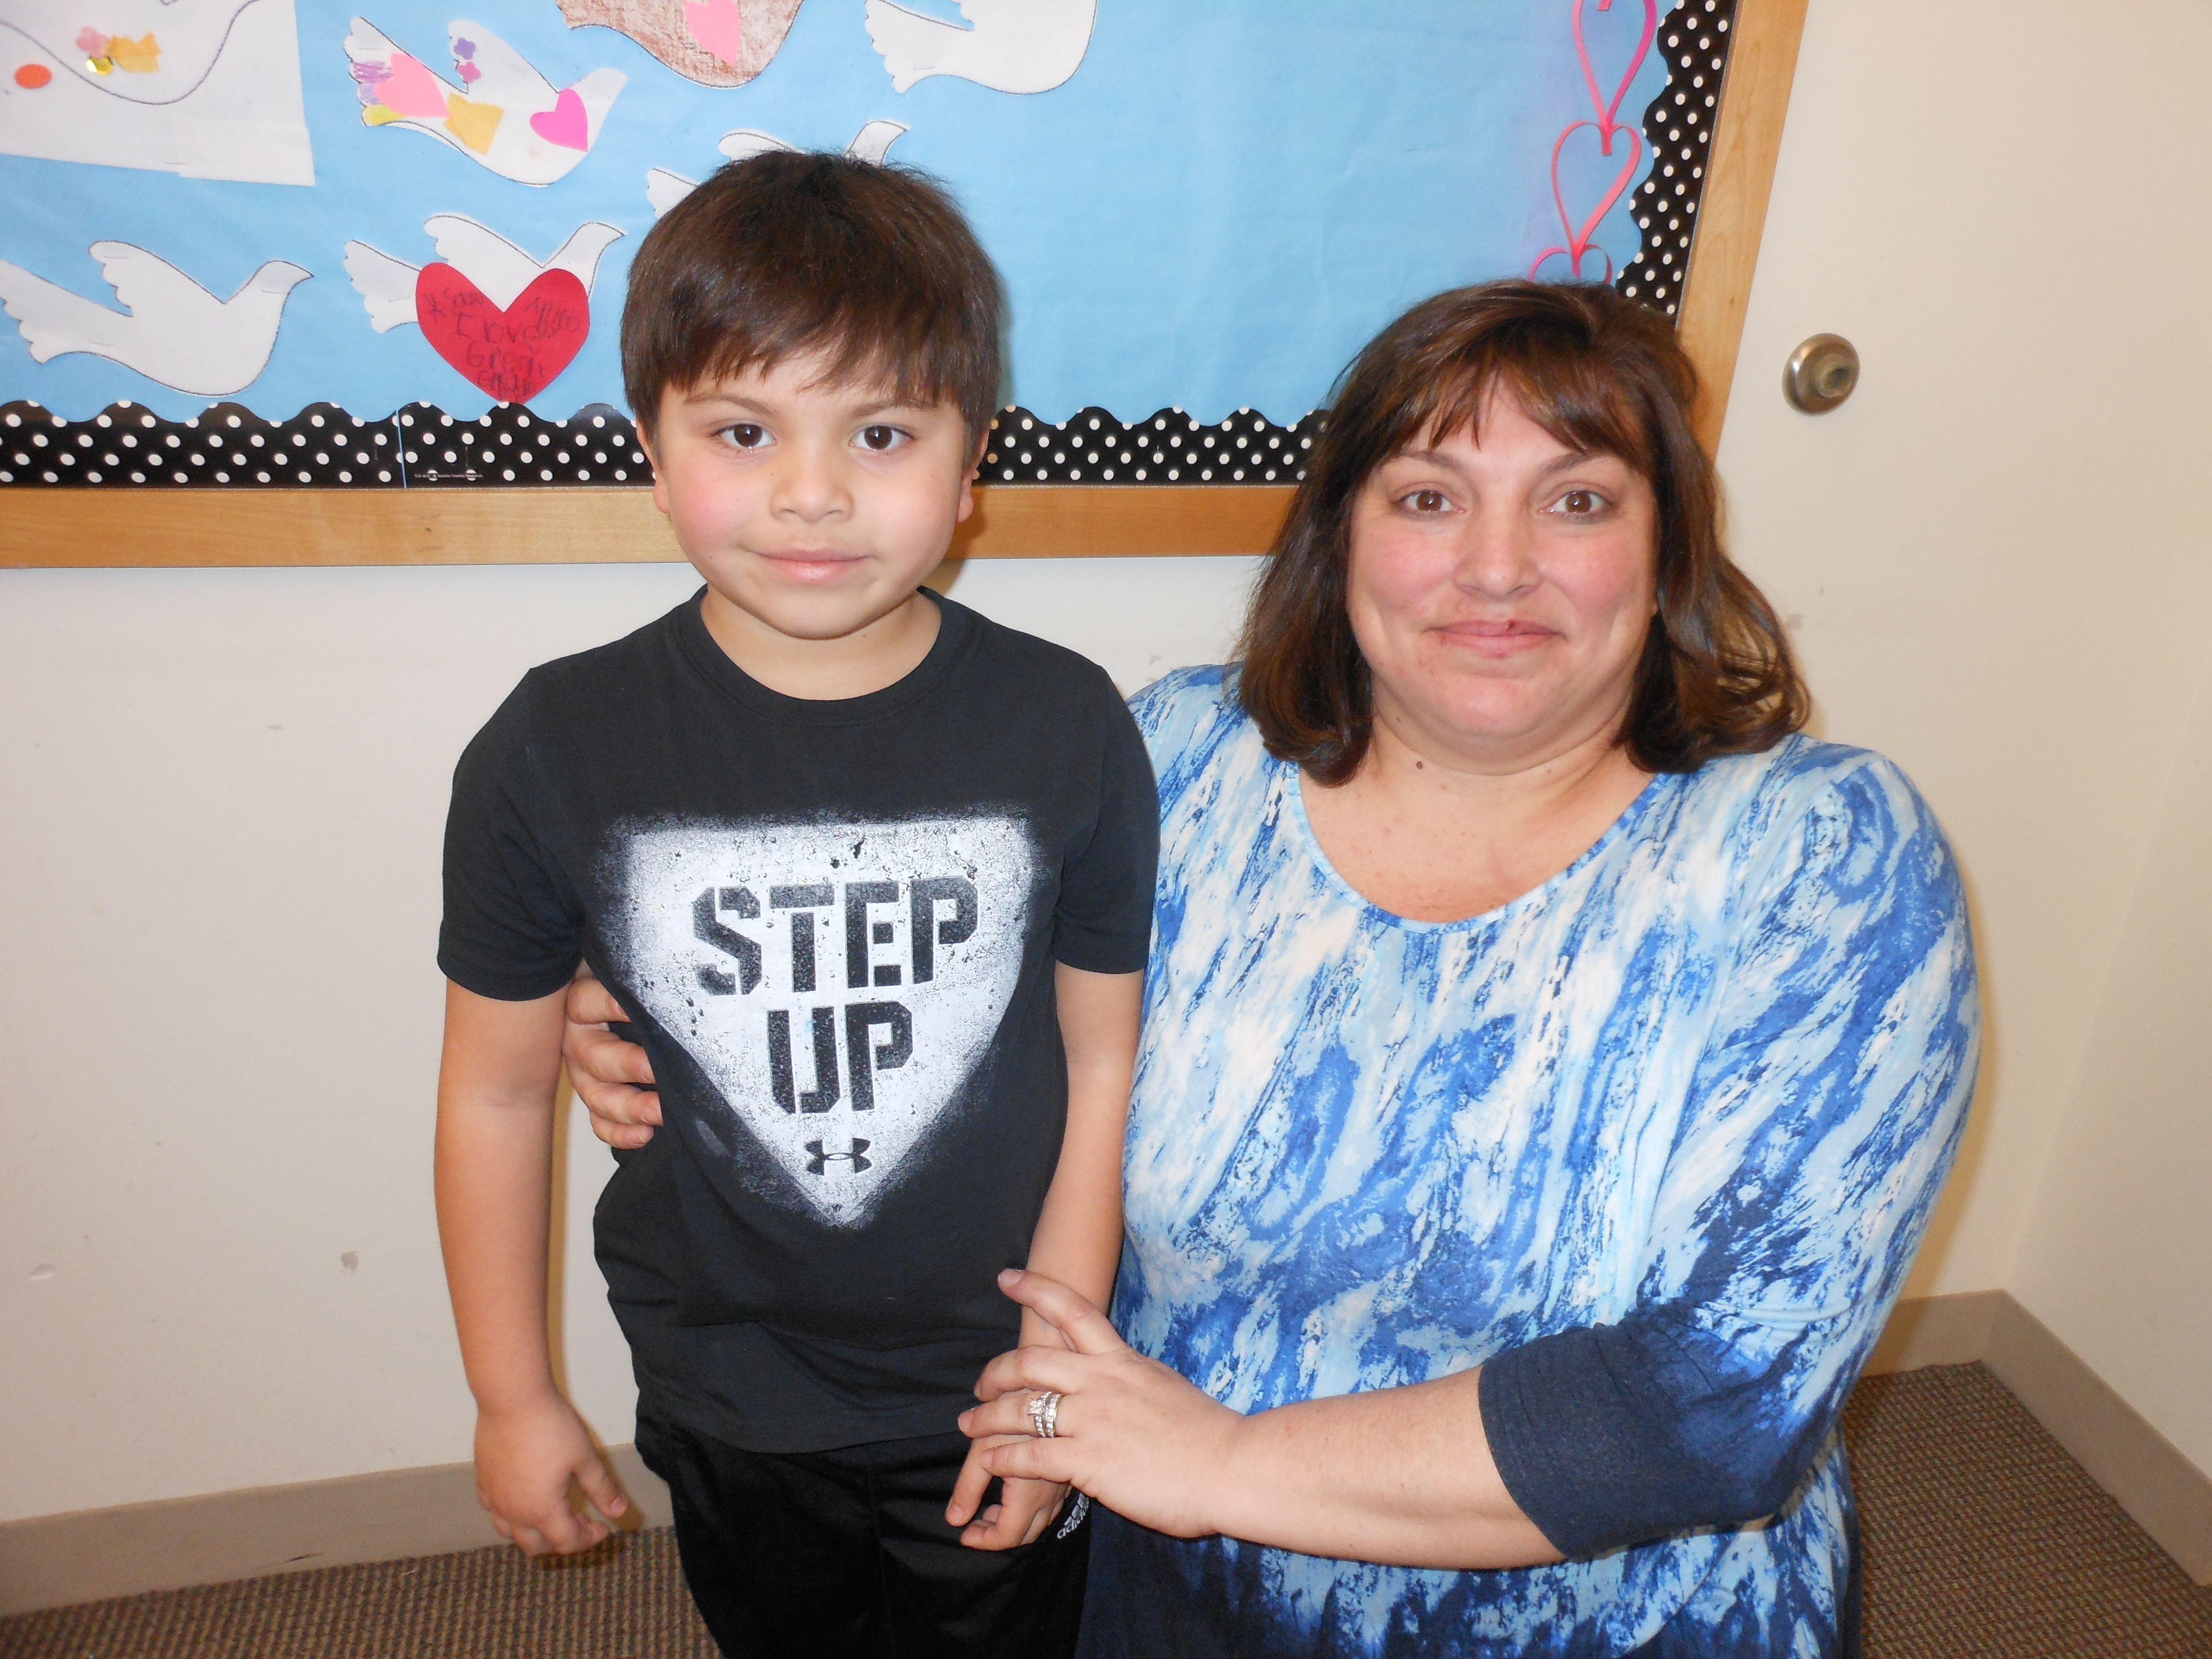 SHOWING SOME HEART: Long-time Saugus elementary school teacher Tammy Sazo is proud of her son Anthony, 6, for an expression of love in a Valentine's Day heart he made and dedicated to his late great-grandmother, which will be displayed on the bulletin board at the Saugus Public Library.